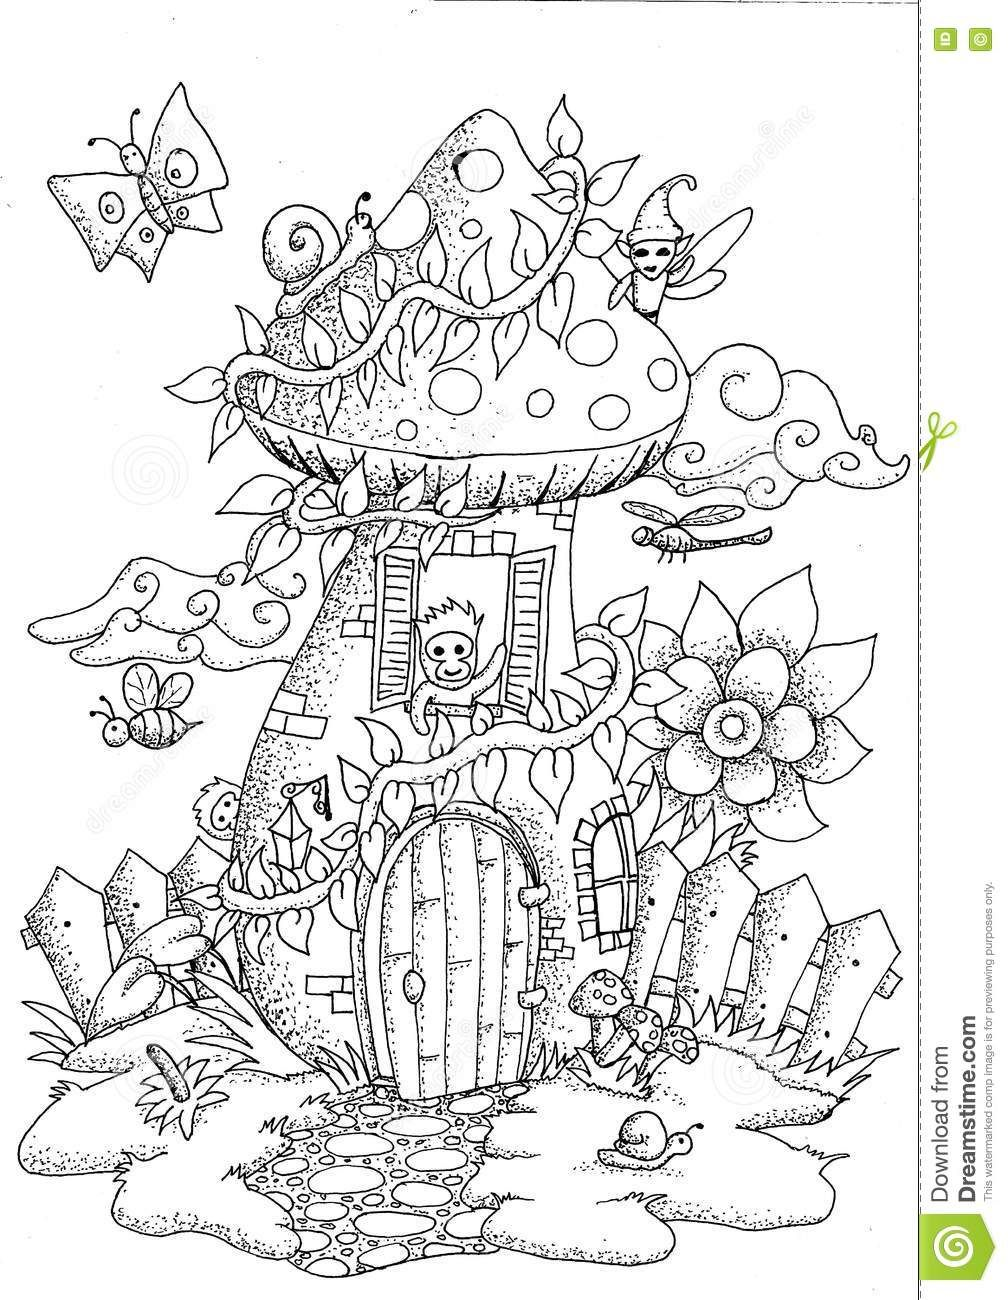 Coloring Sheets By Emma Marsh Related Image